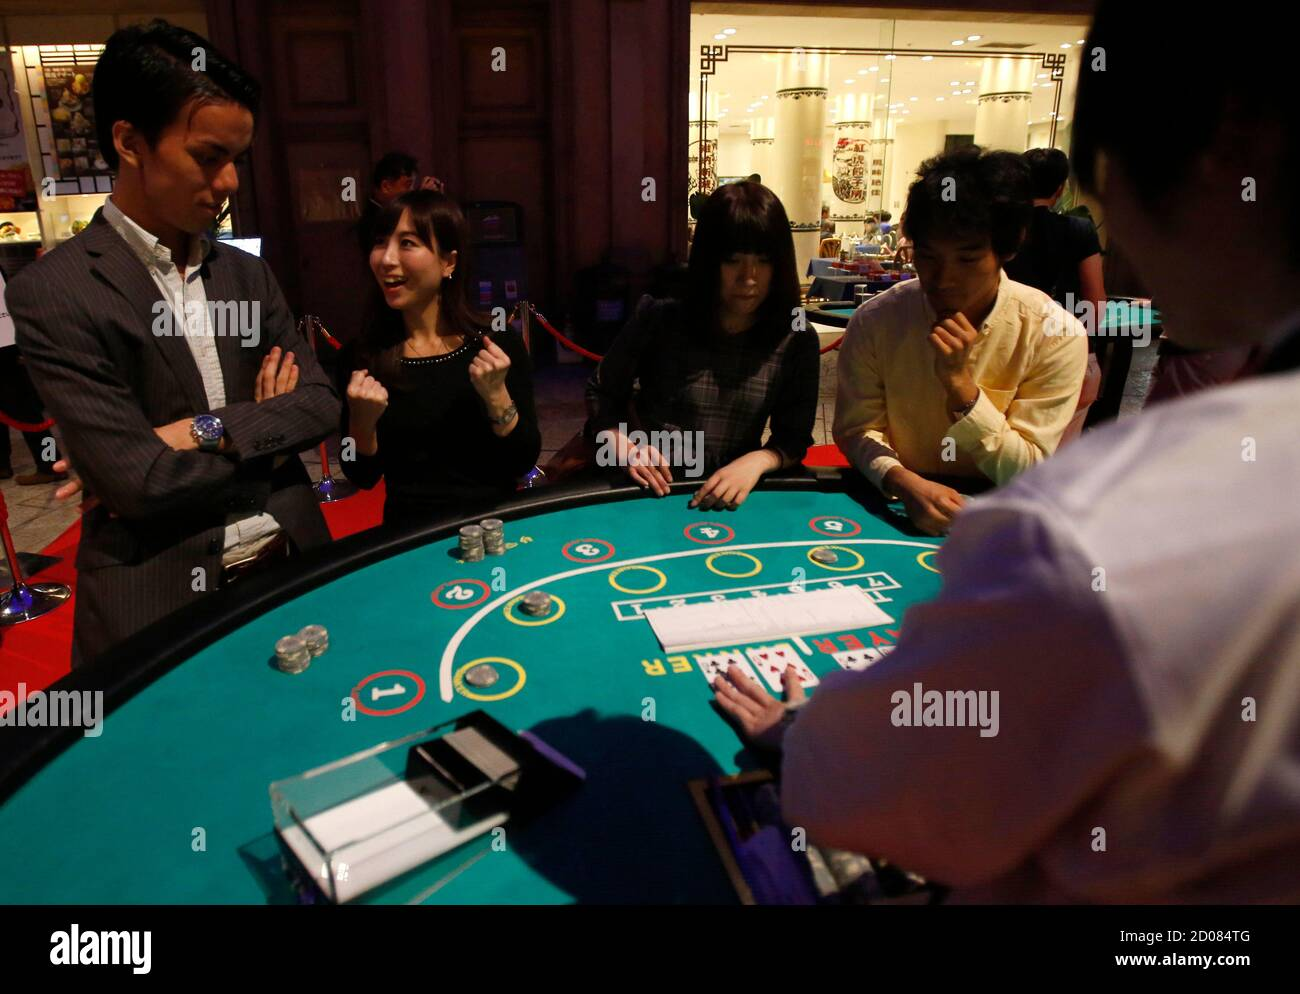 Baccarat Card Game High Resolution Stock Photography And Images Alamy